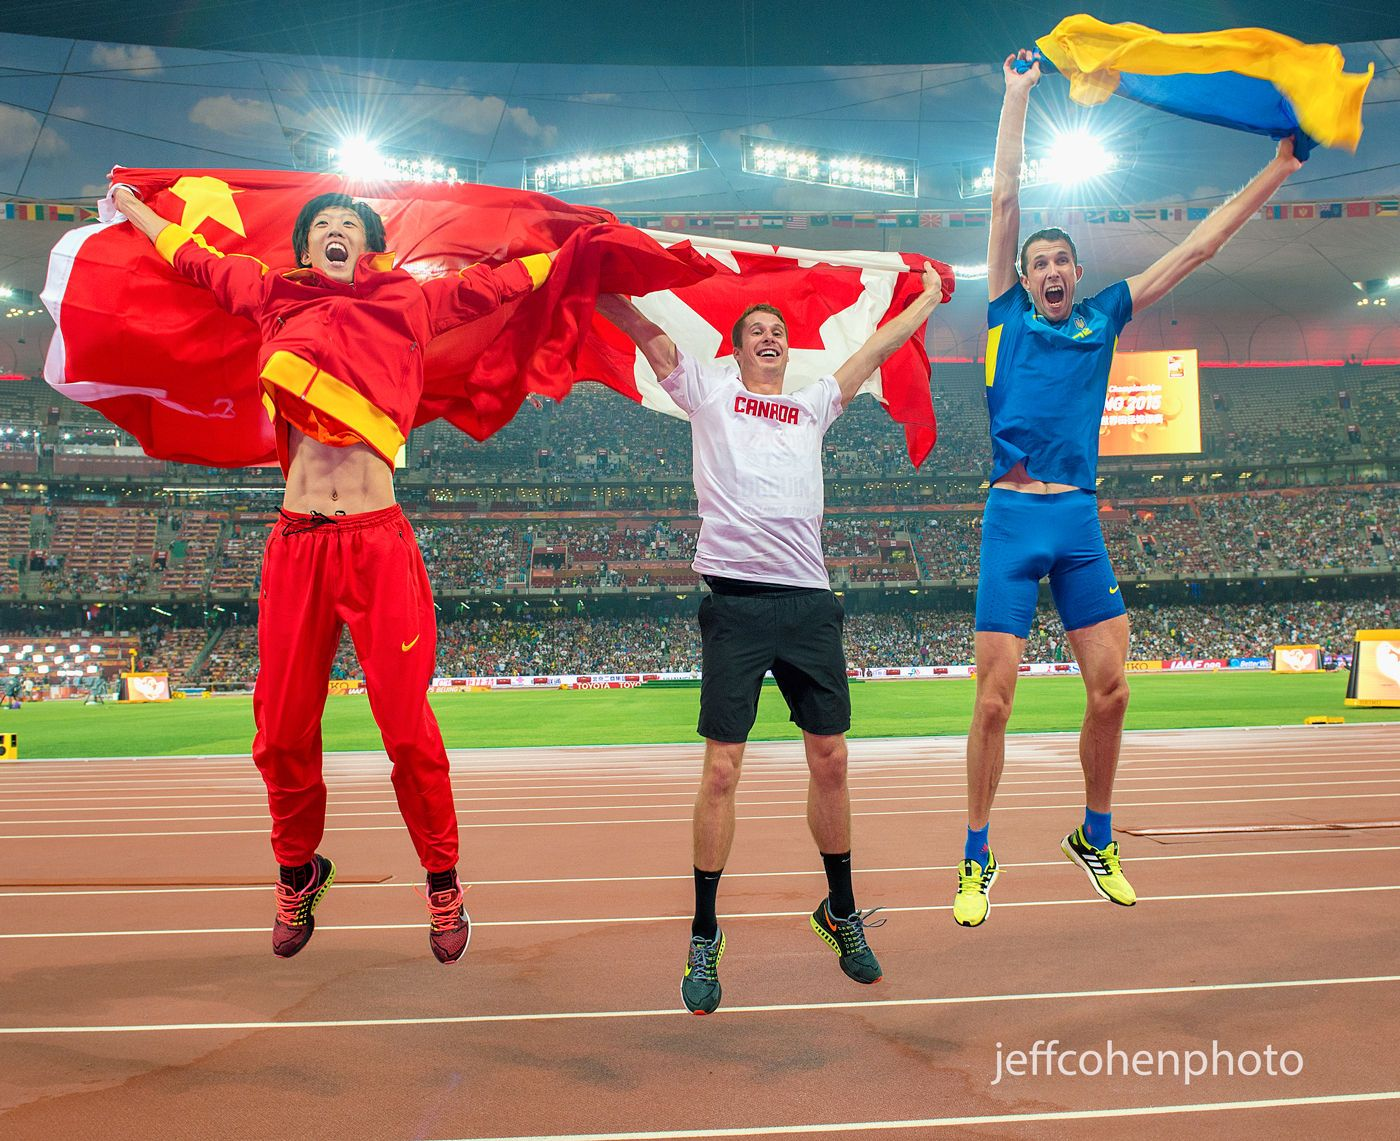 1beijing2015_night_9_men_hj_jump_jeff_cohen_photo_36612_web.jpg